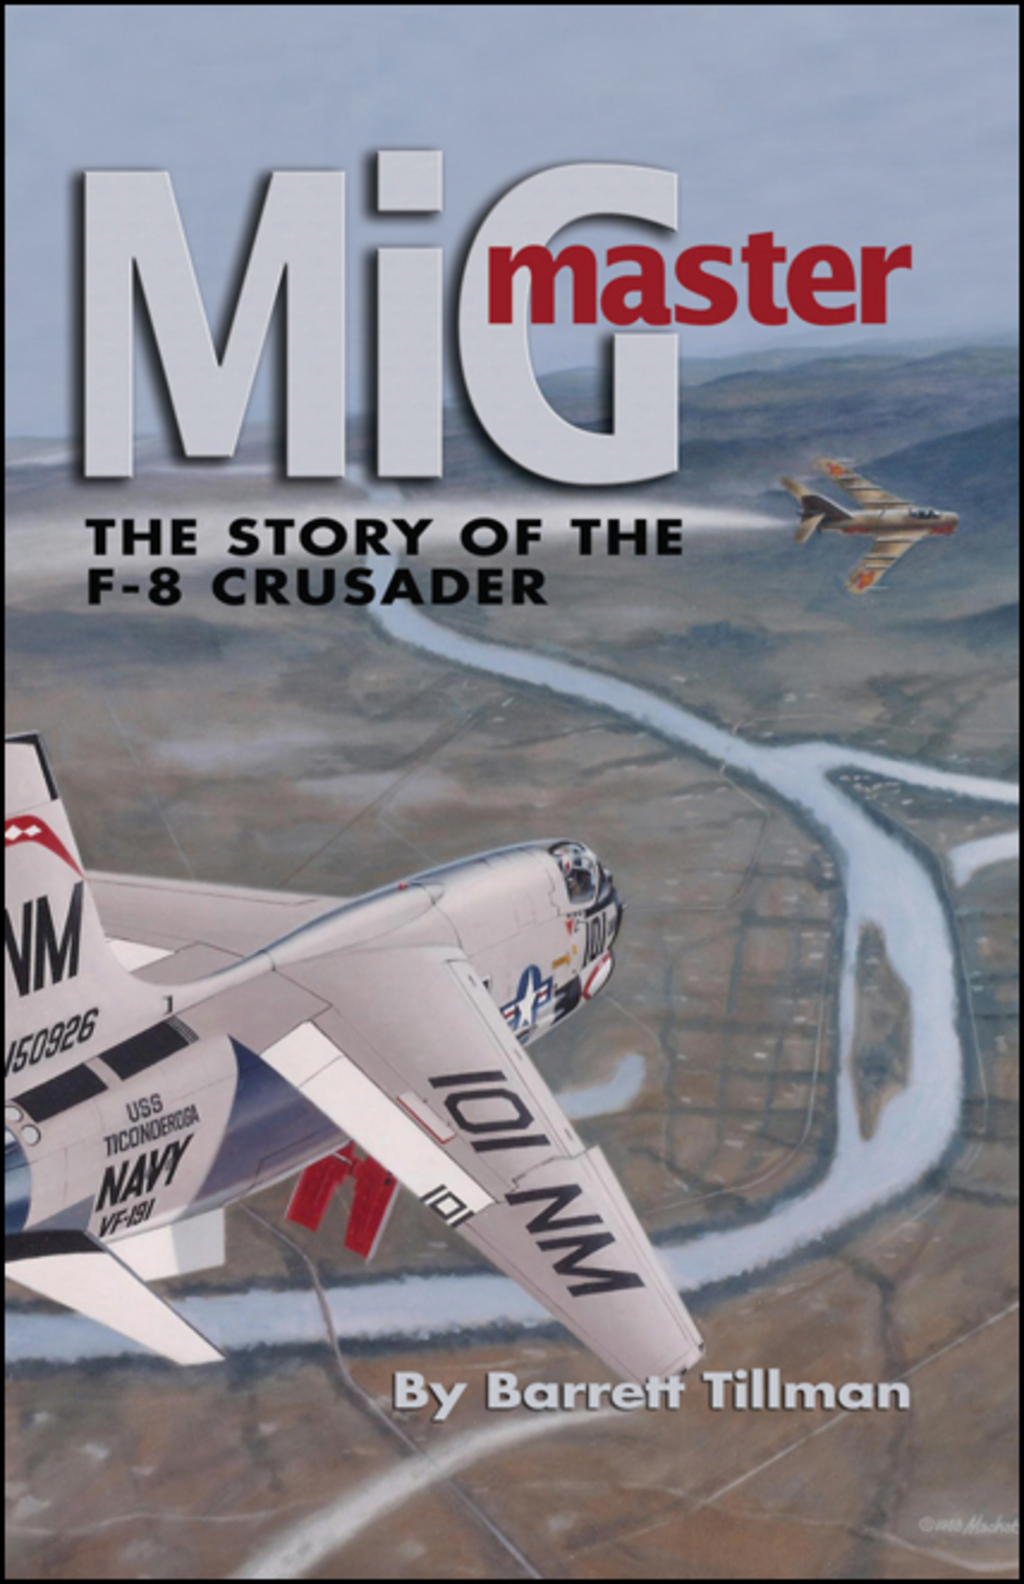 MiG Master: The Story of the F-8 Crusader (ebook) eBooks